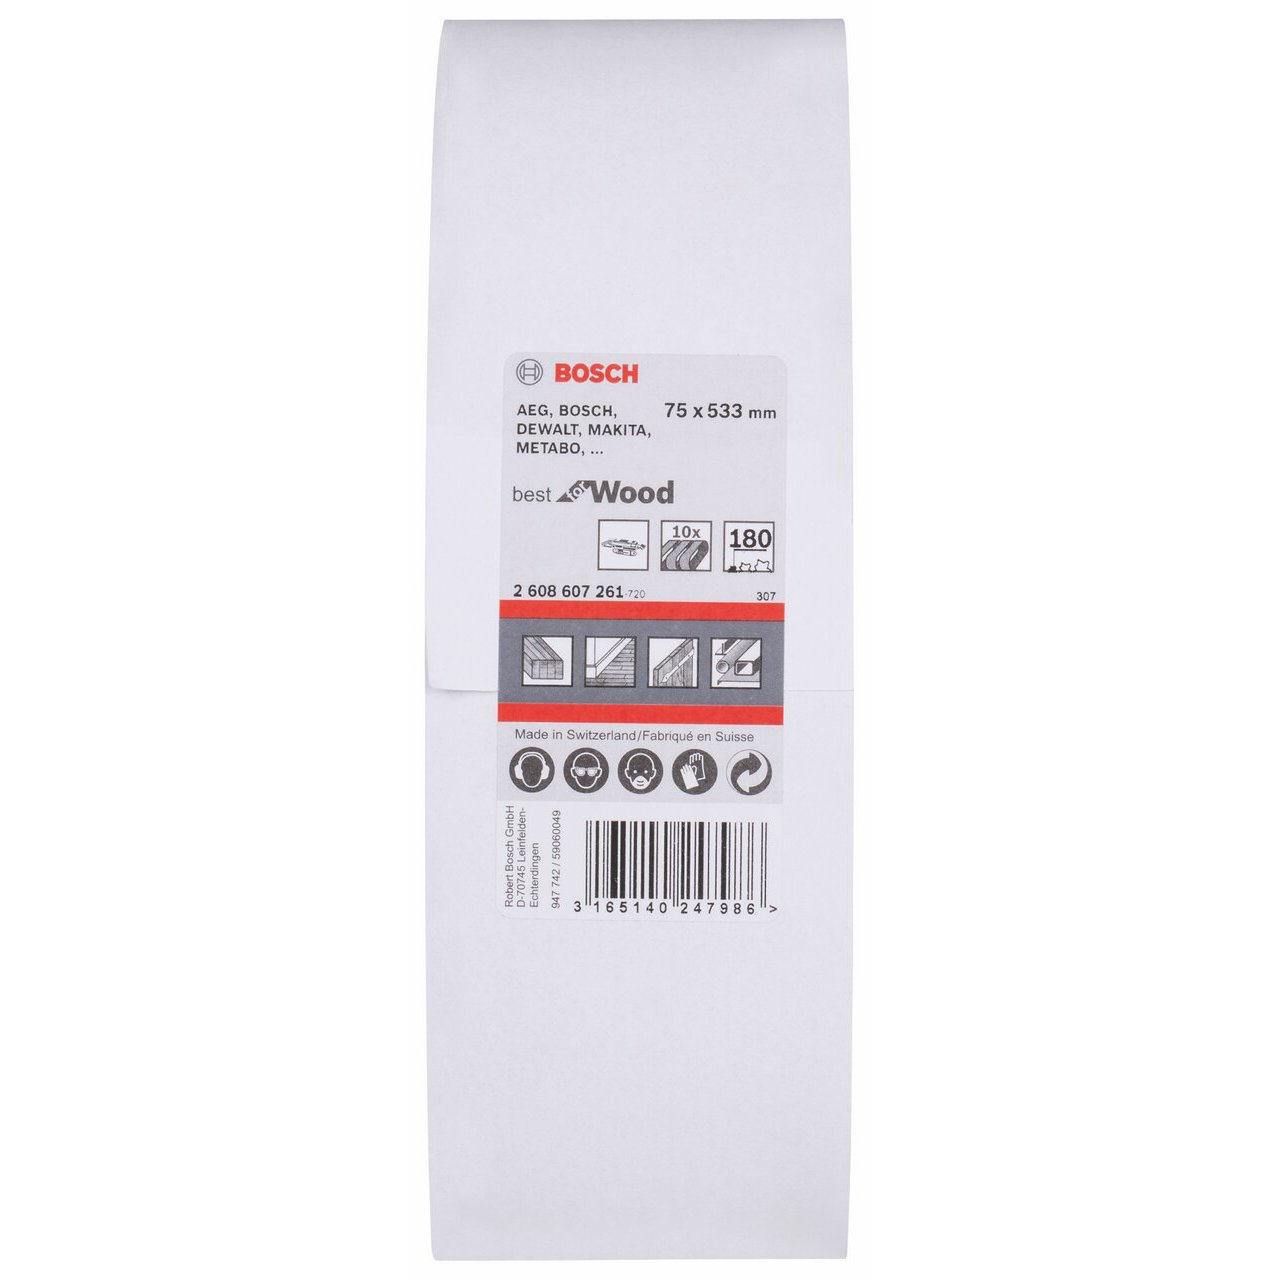 10 Stk. Bosch Professional Schleifband C470 Best for Wood+Paint 75x533mm Korn 180